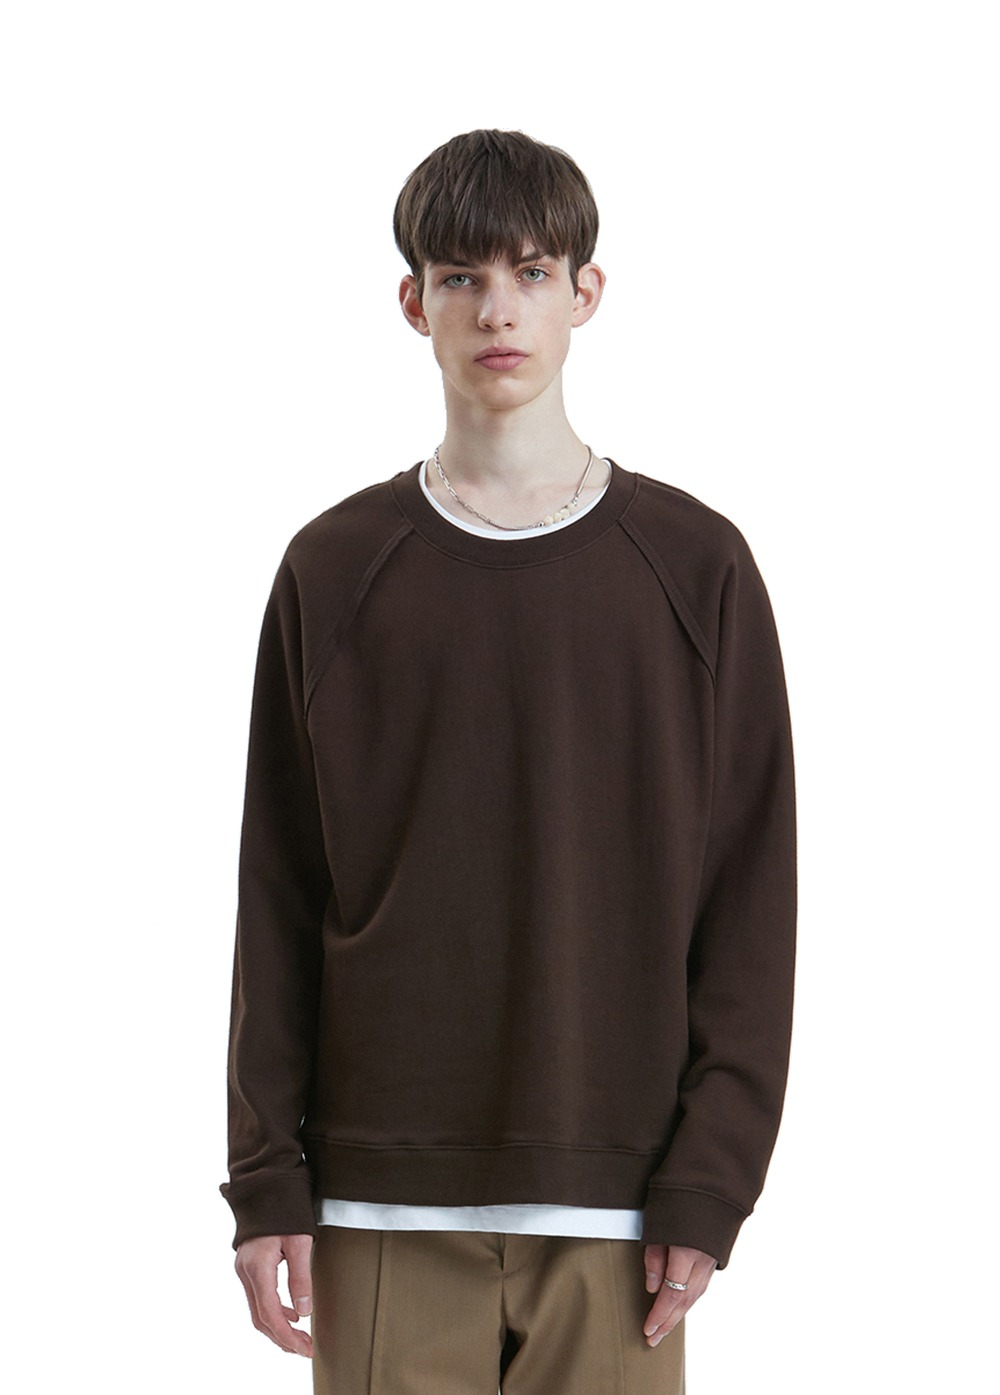 LIFUL SEAM OUT RAGLAN SWEATSHIRT dark brown